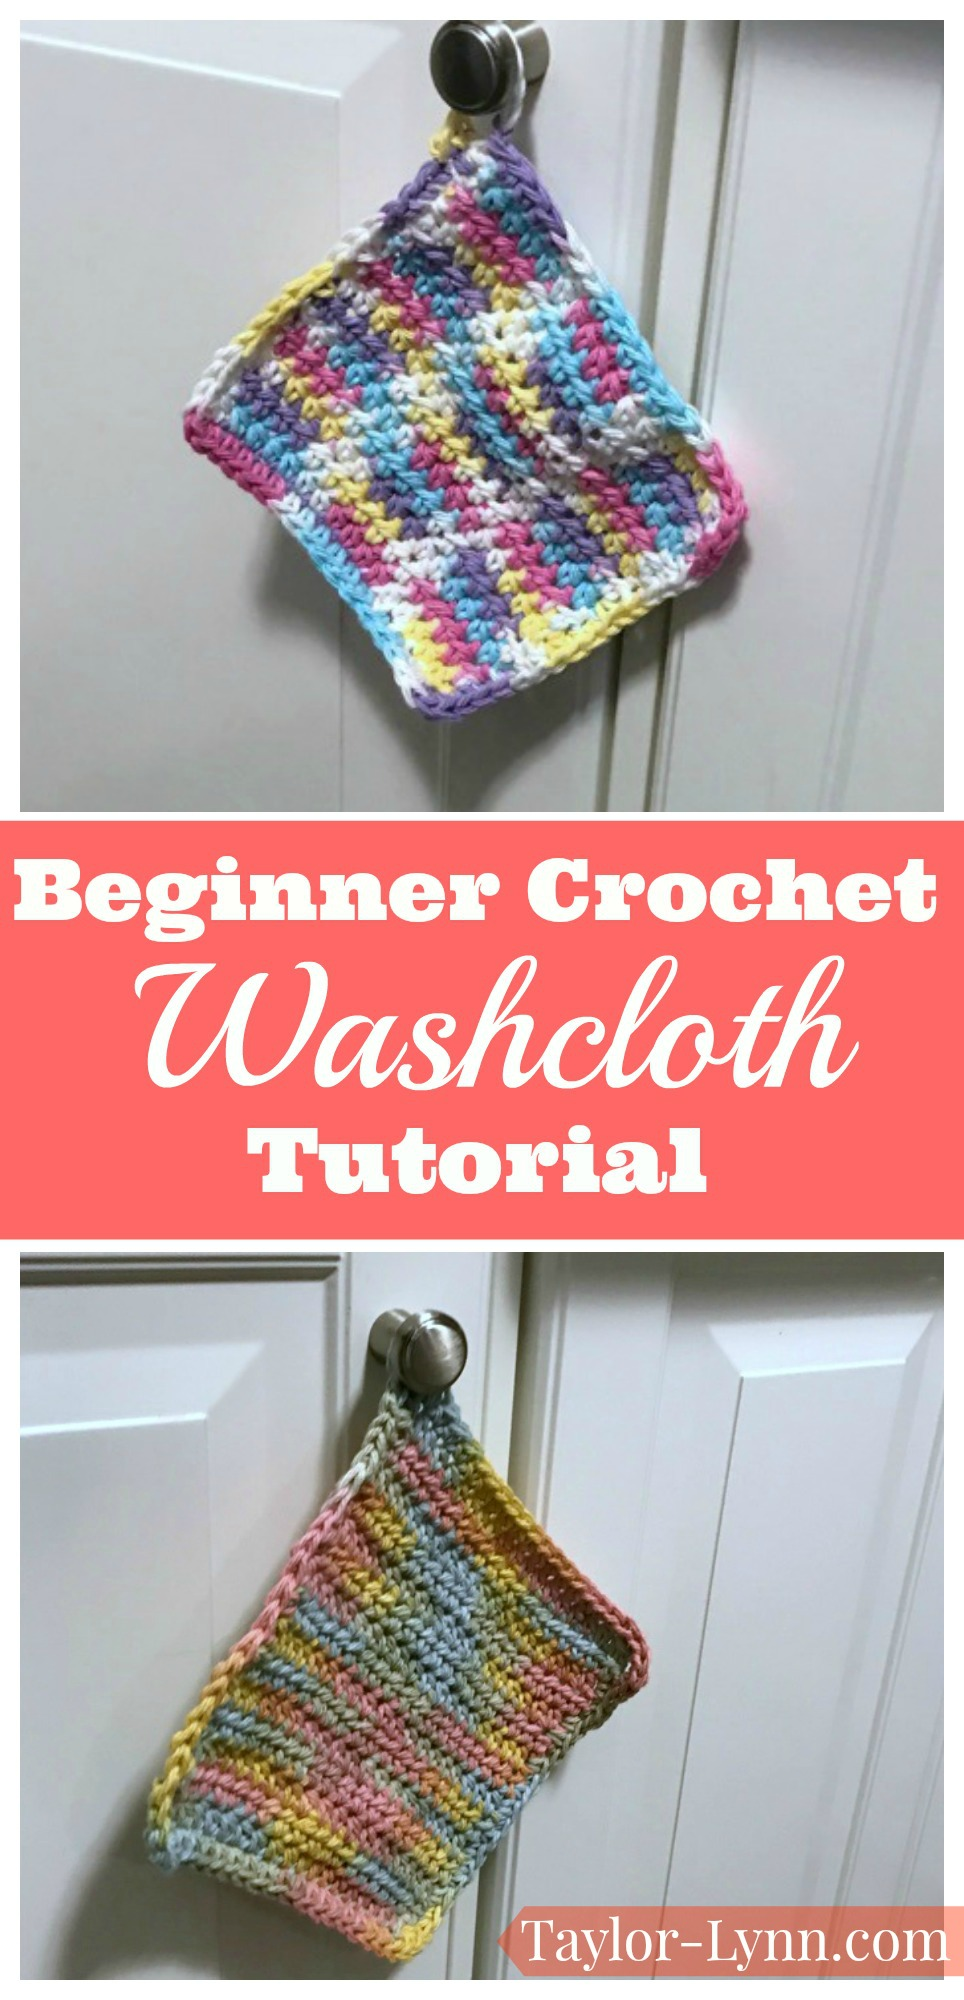 Crochet washcloth tutorial